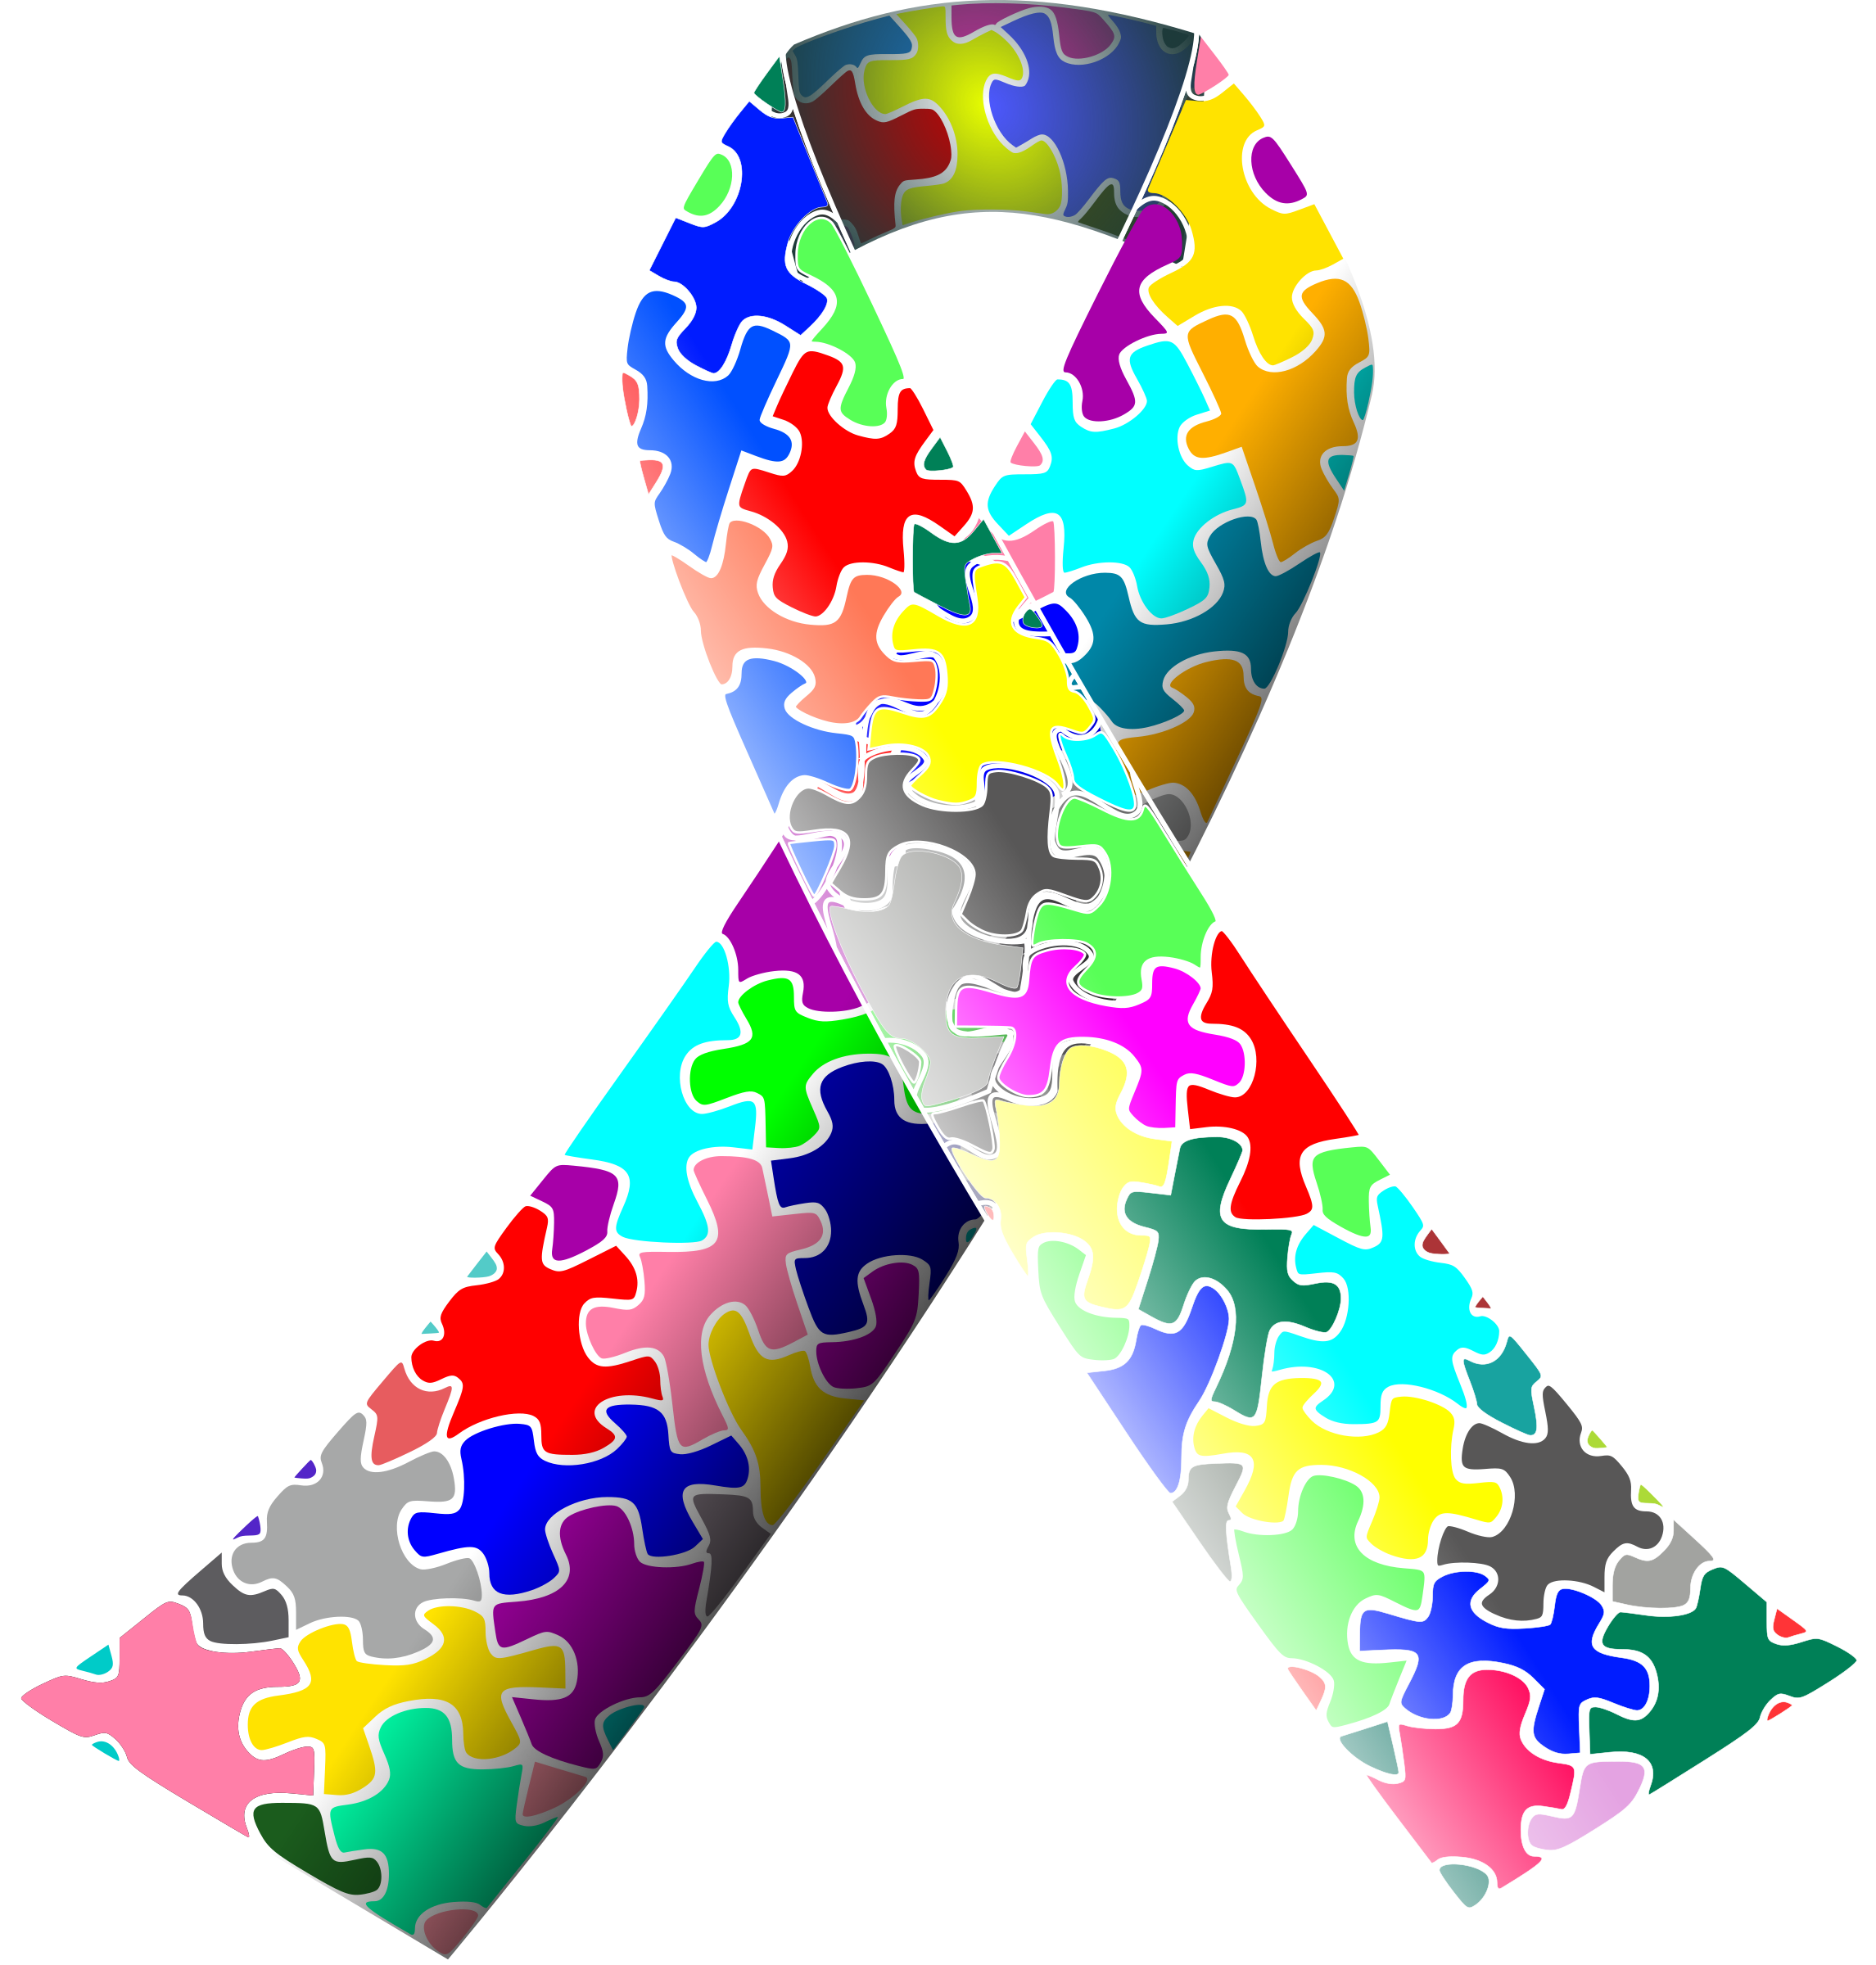 Autism clip art clipart royalty free stock Clipart - Autism (puzzle) ribbon clipart royalty free stock